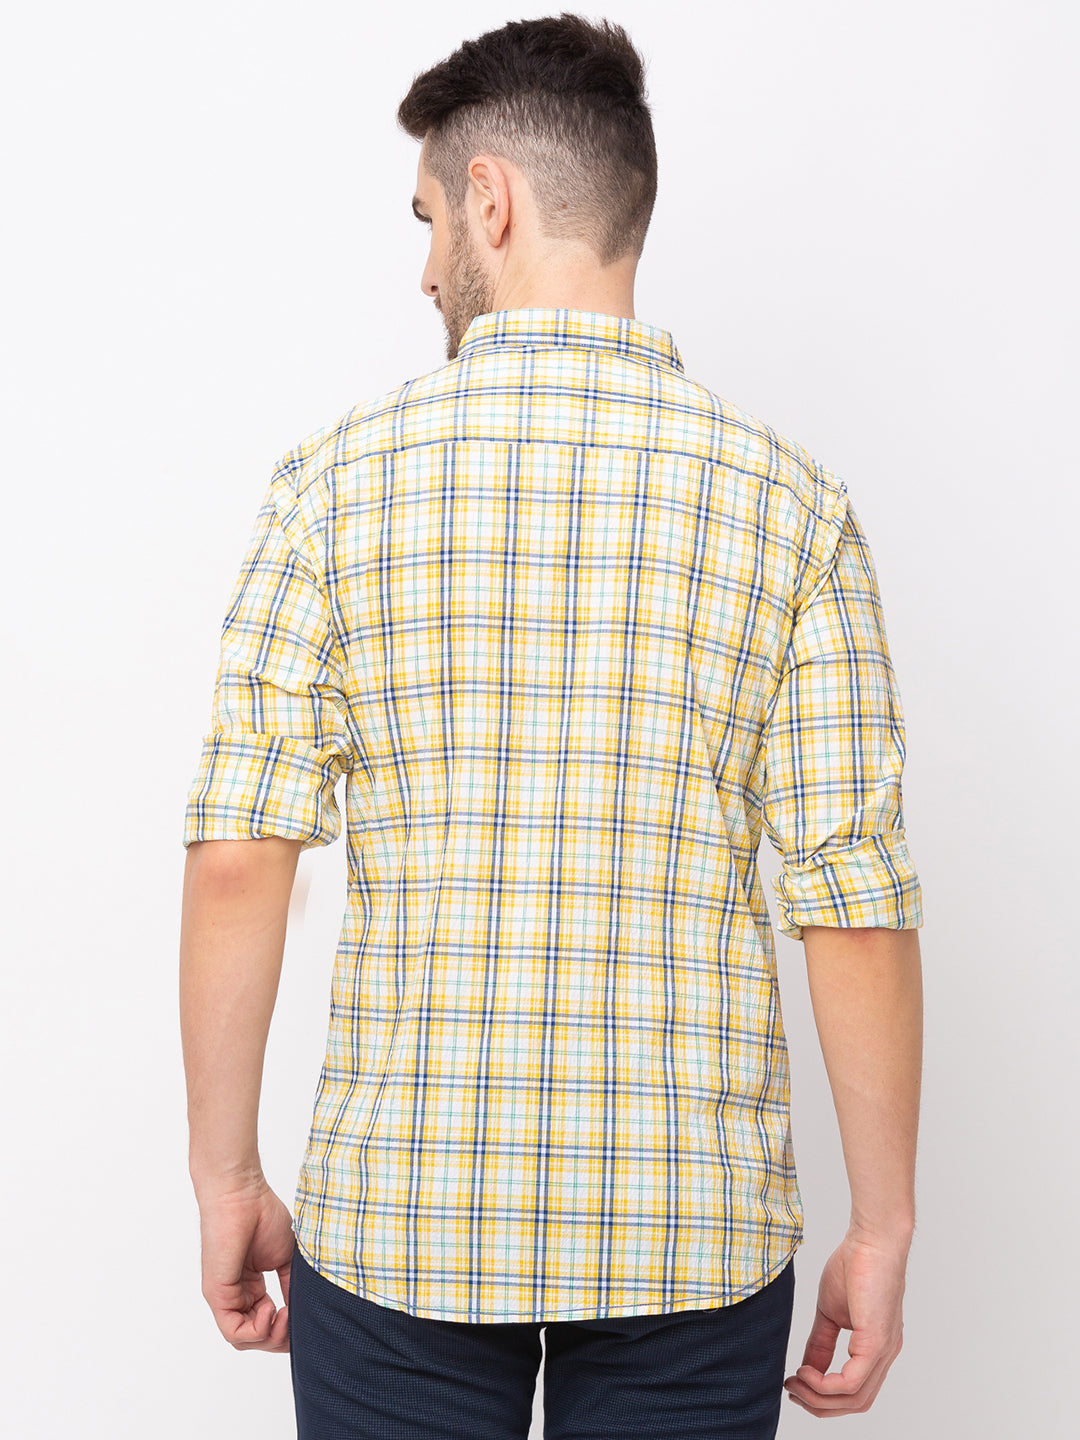 Globus Yellow Checked Shirt-3